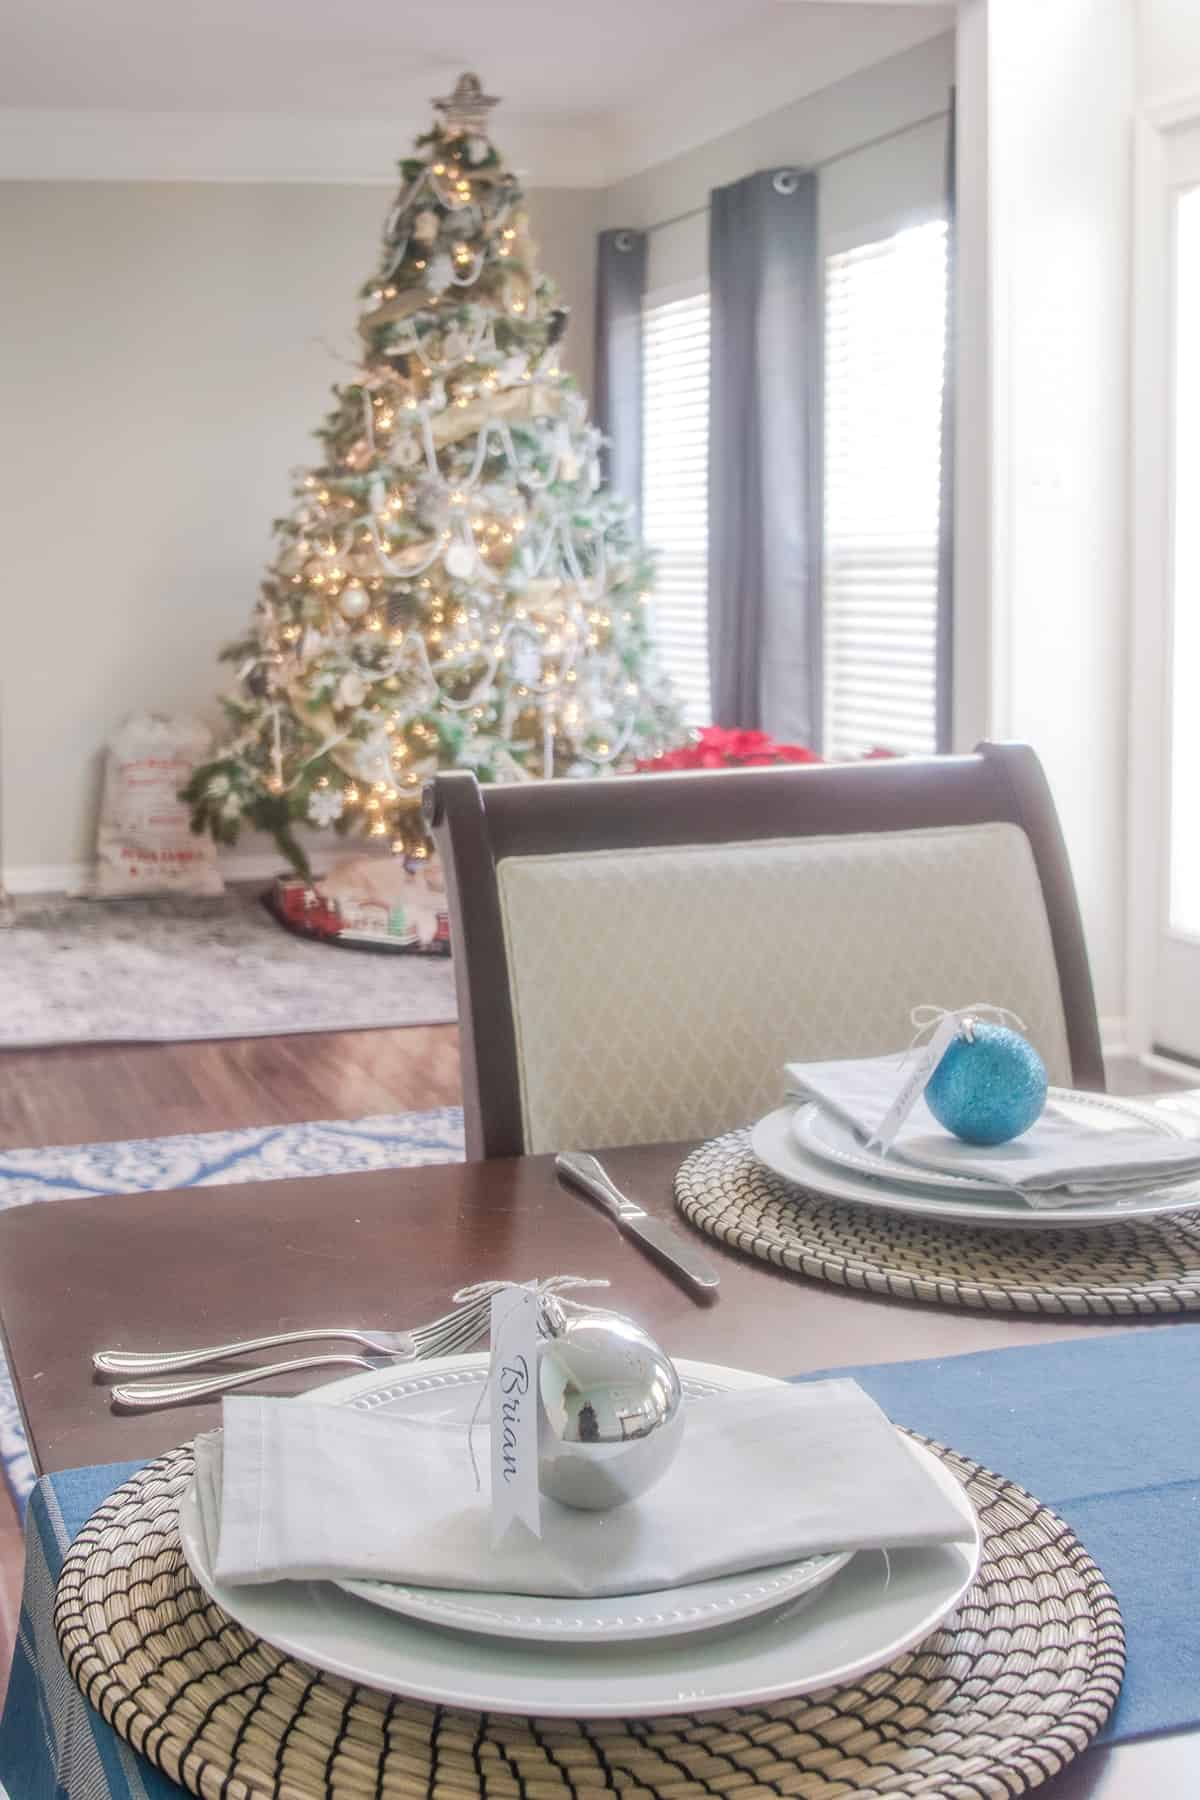 Winter wonderland dining room Christmas tablescape with woodland Christmas tree in background